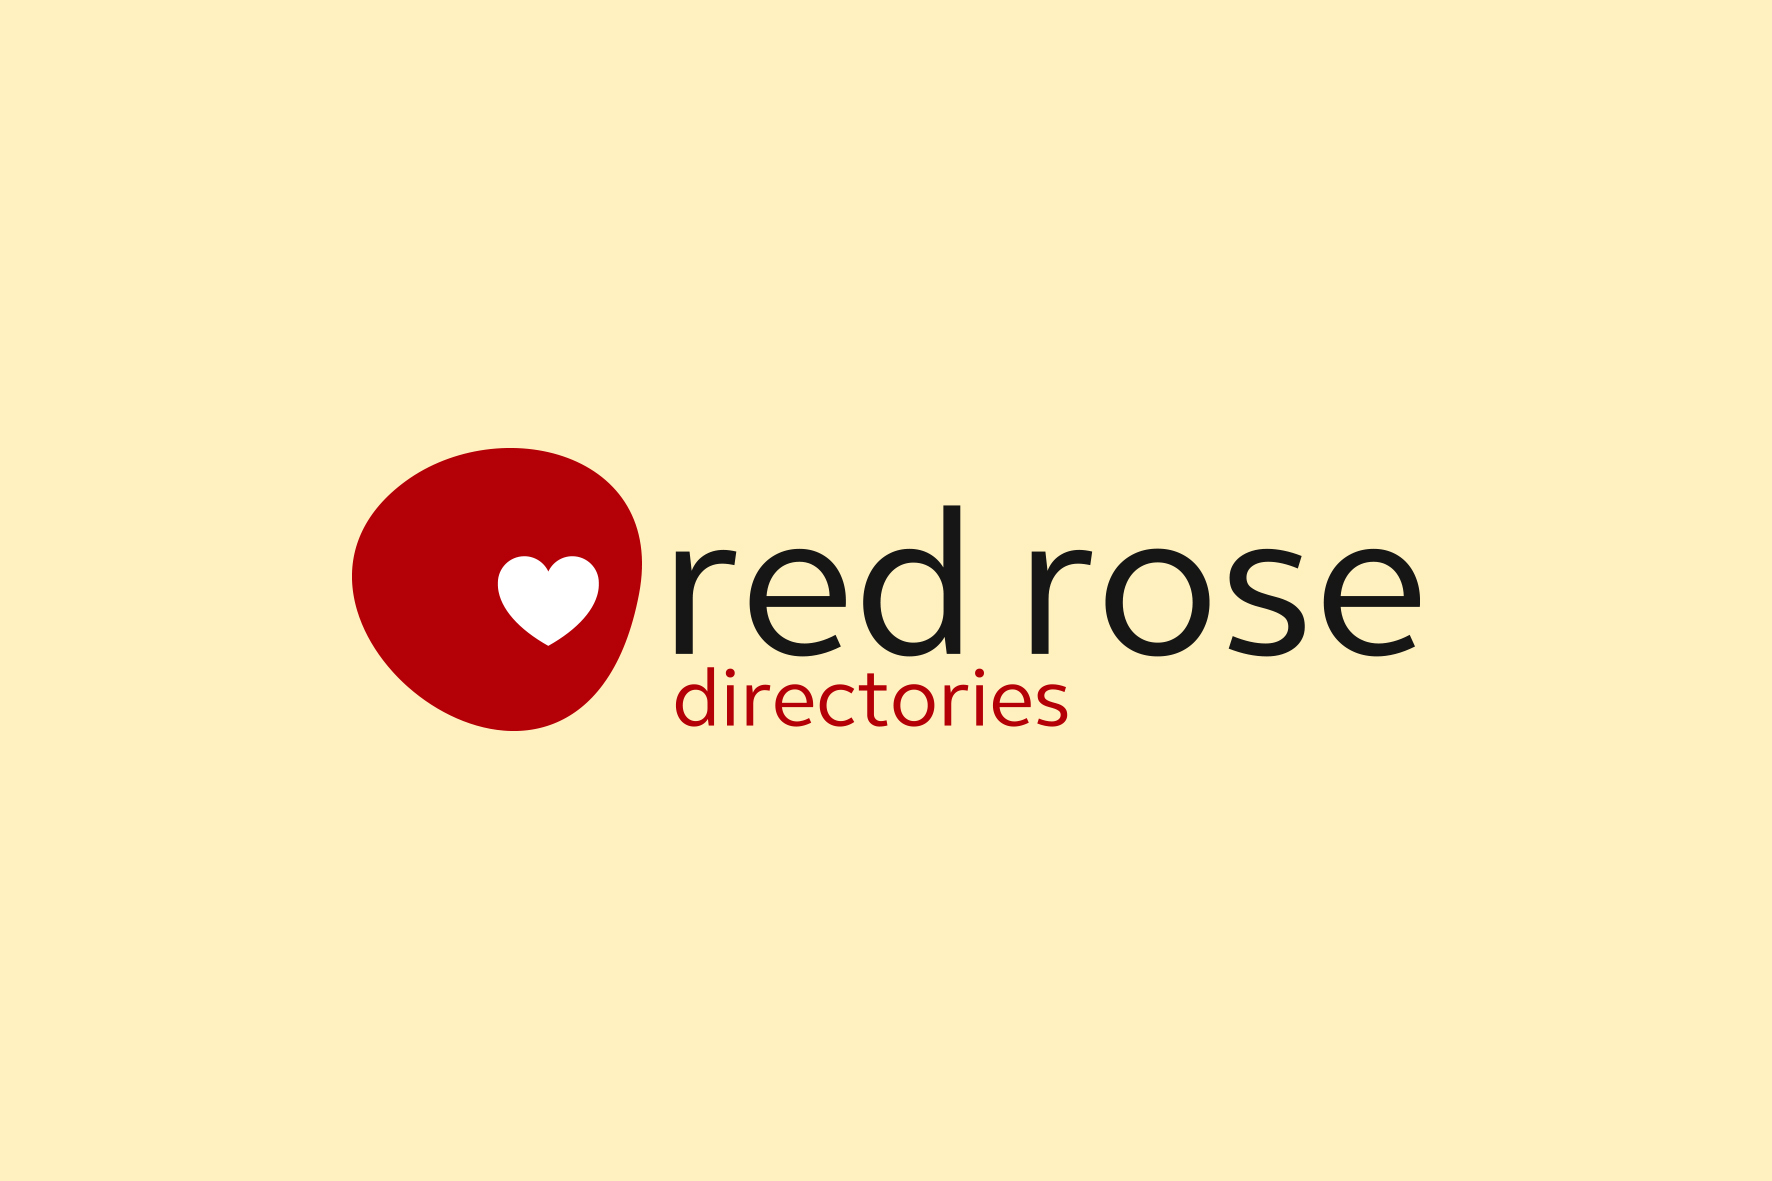 Re-brand of the Red Rose directories magazines company logo